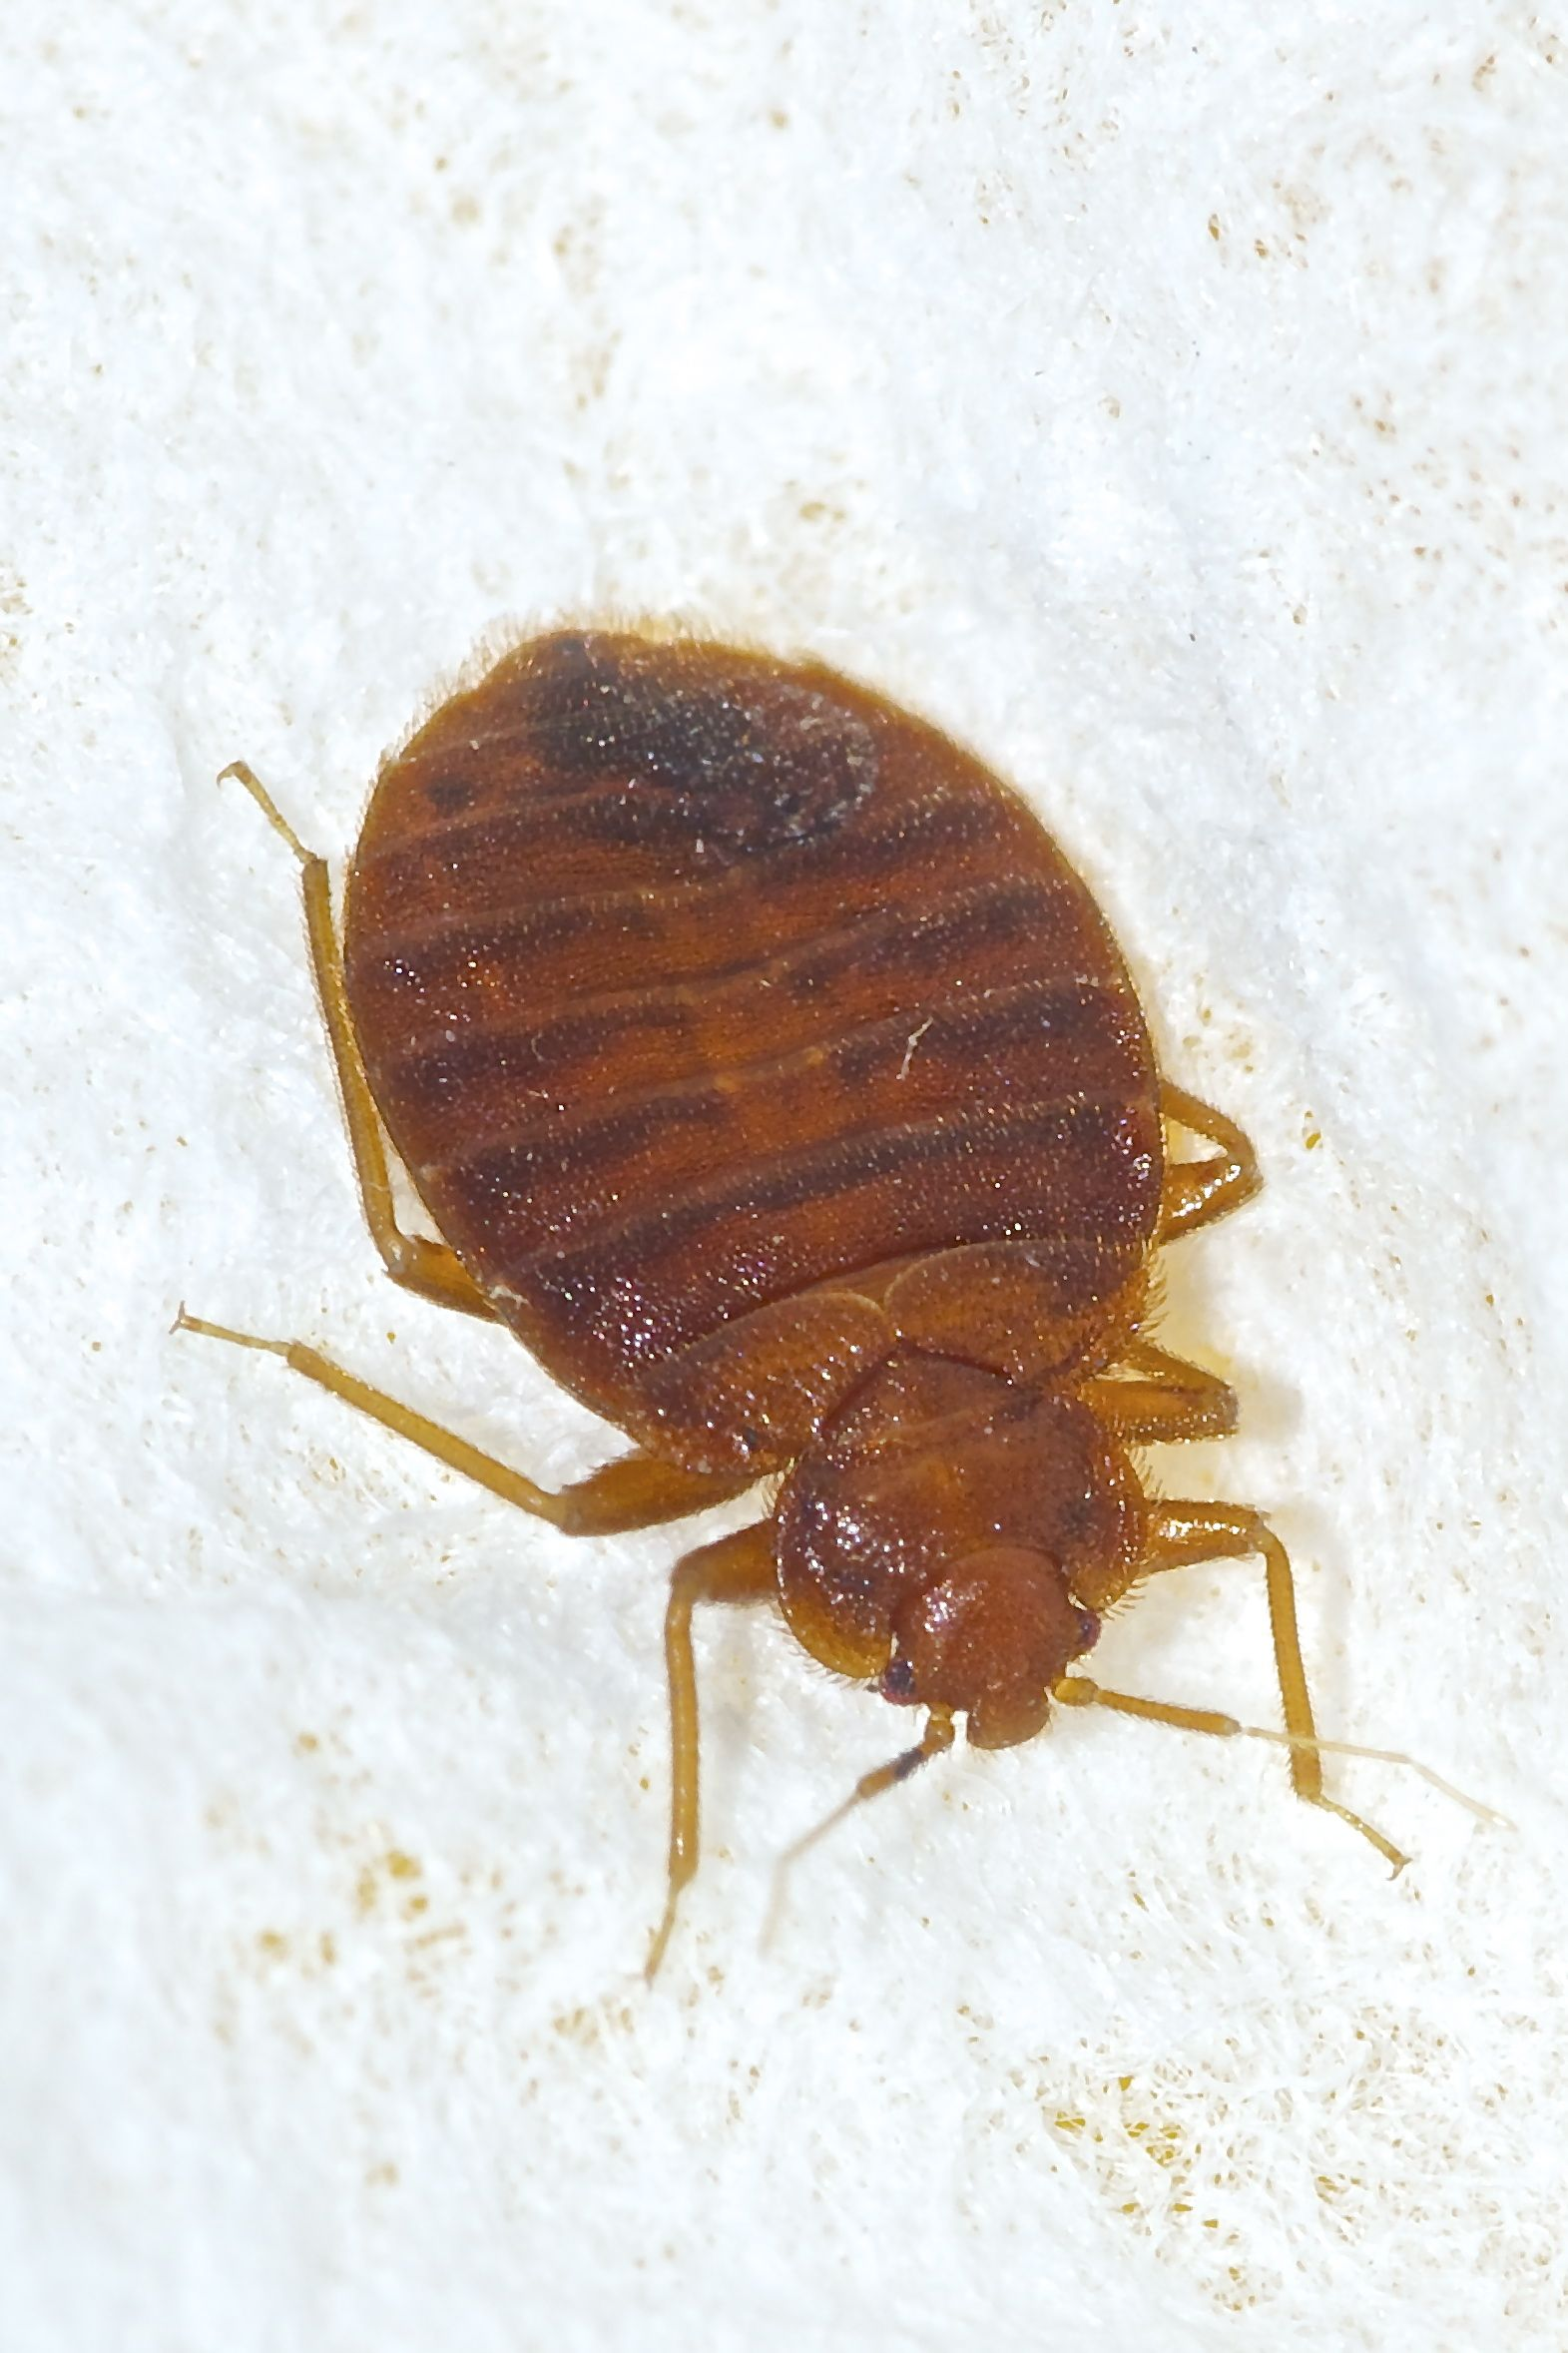 Here you can see bedbugs at different life stages in